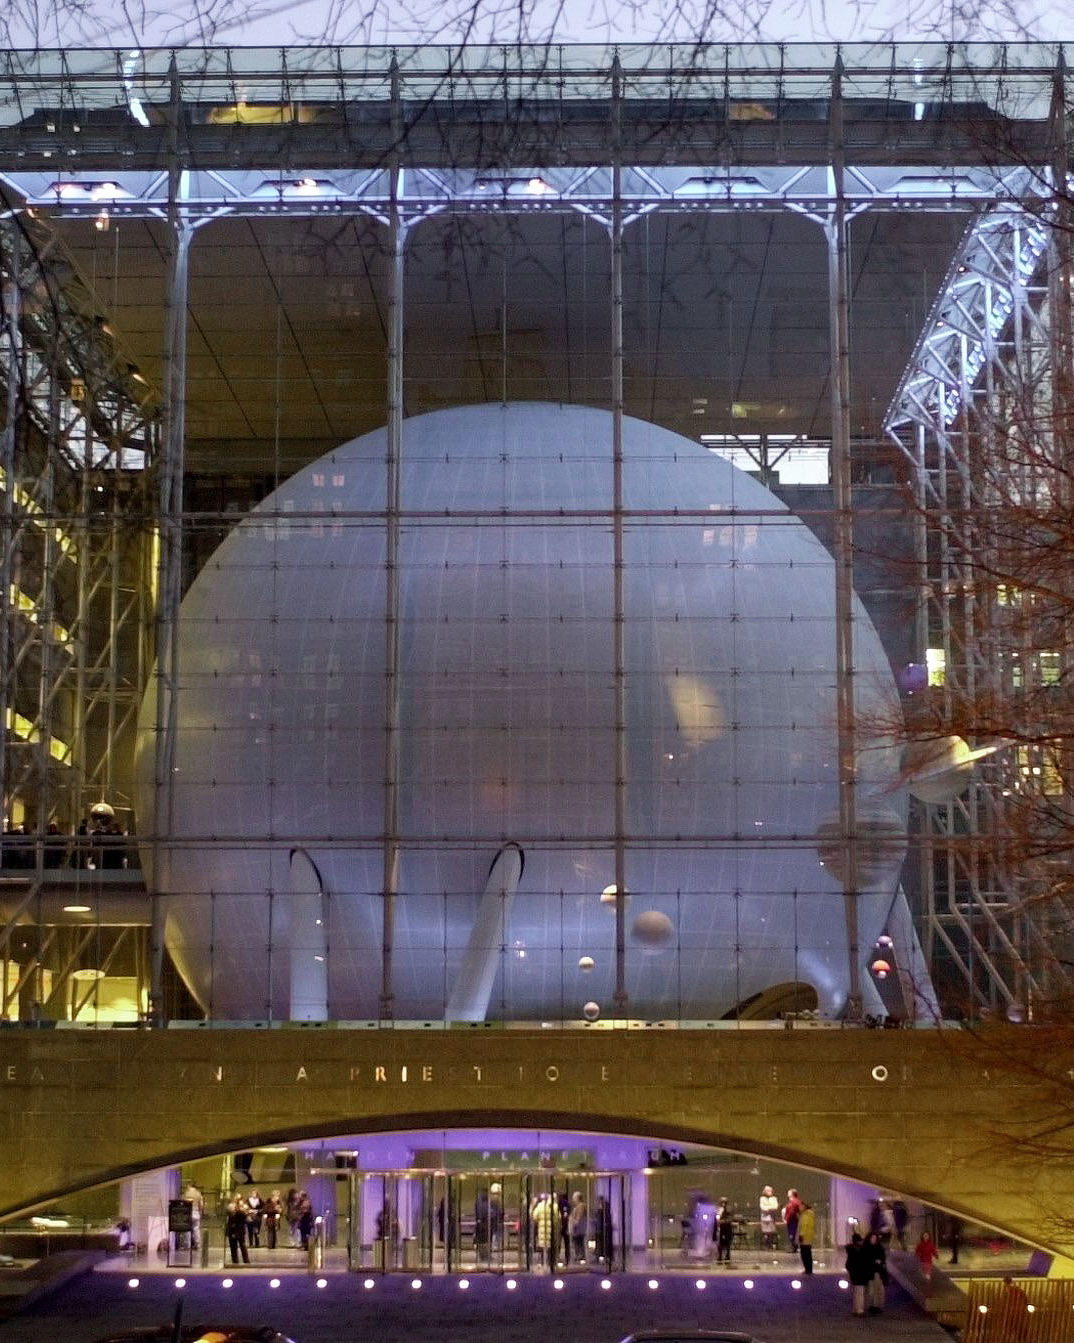 Hayden Planetarium at The American Museum of Natural History